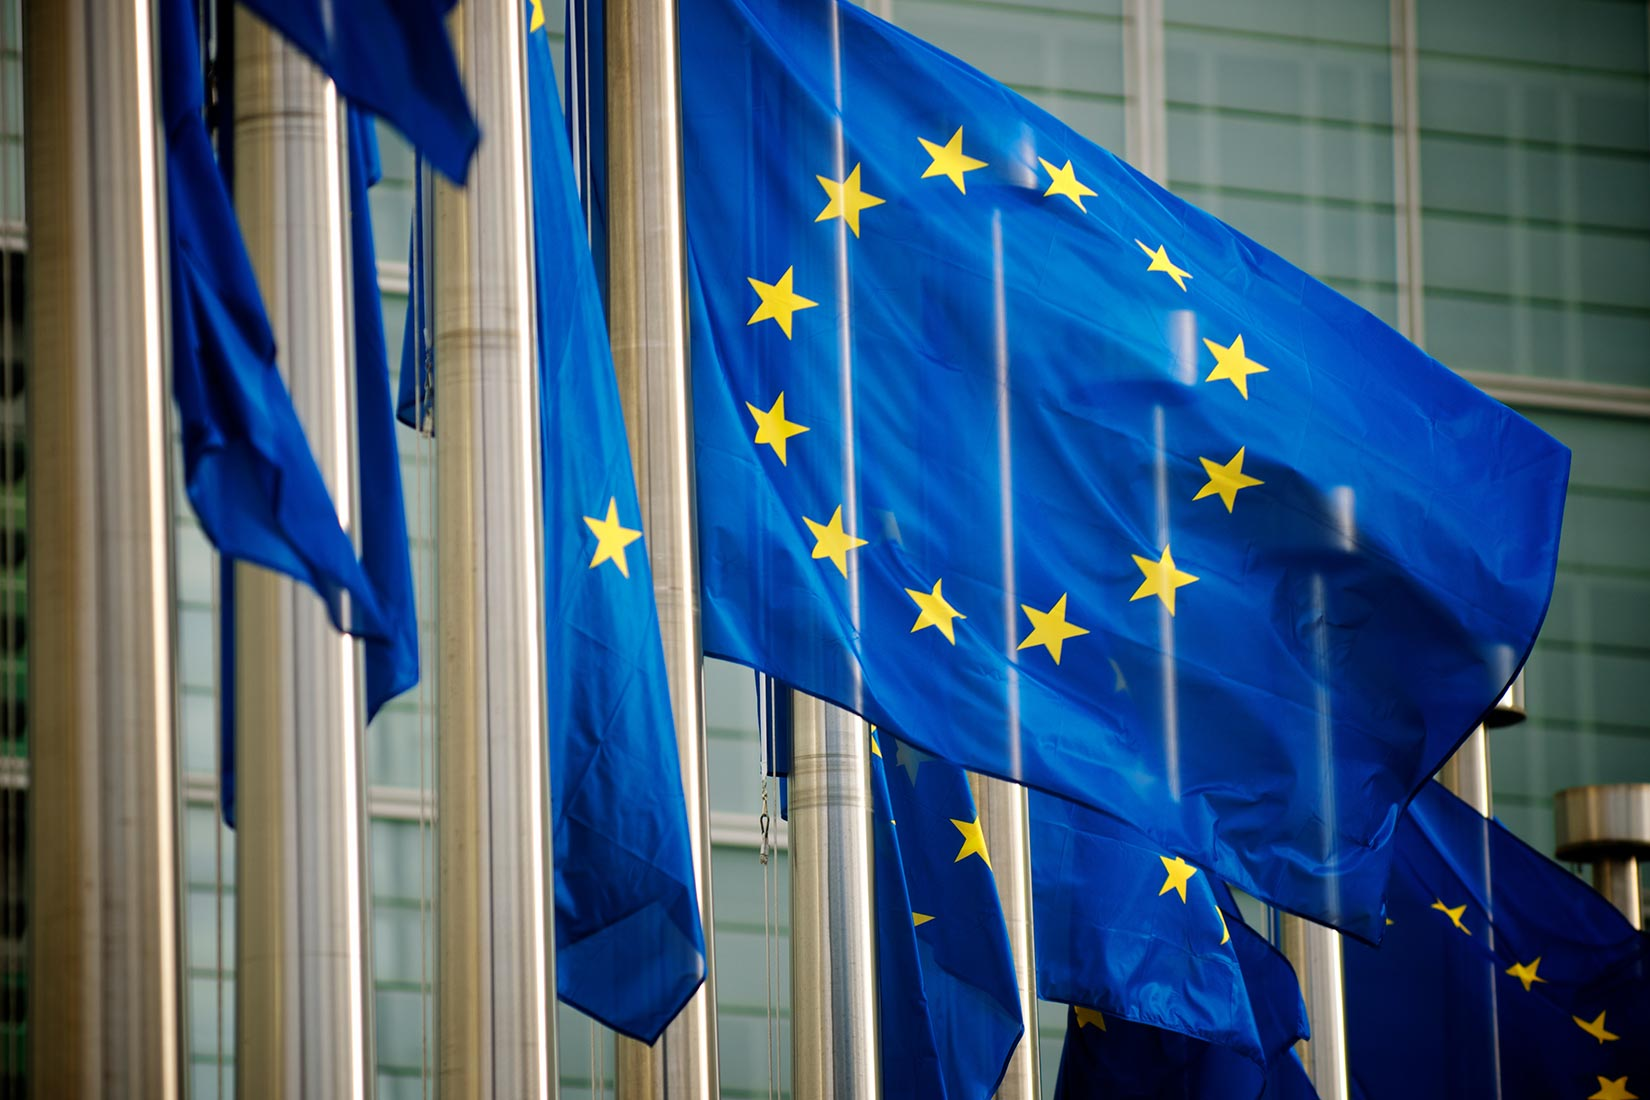 European Strategic Autonomy and Nuclear Deterrence<br>- Progress of EU-NATO Cooperation and Impact on the Indo-Pacific Region –